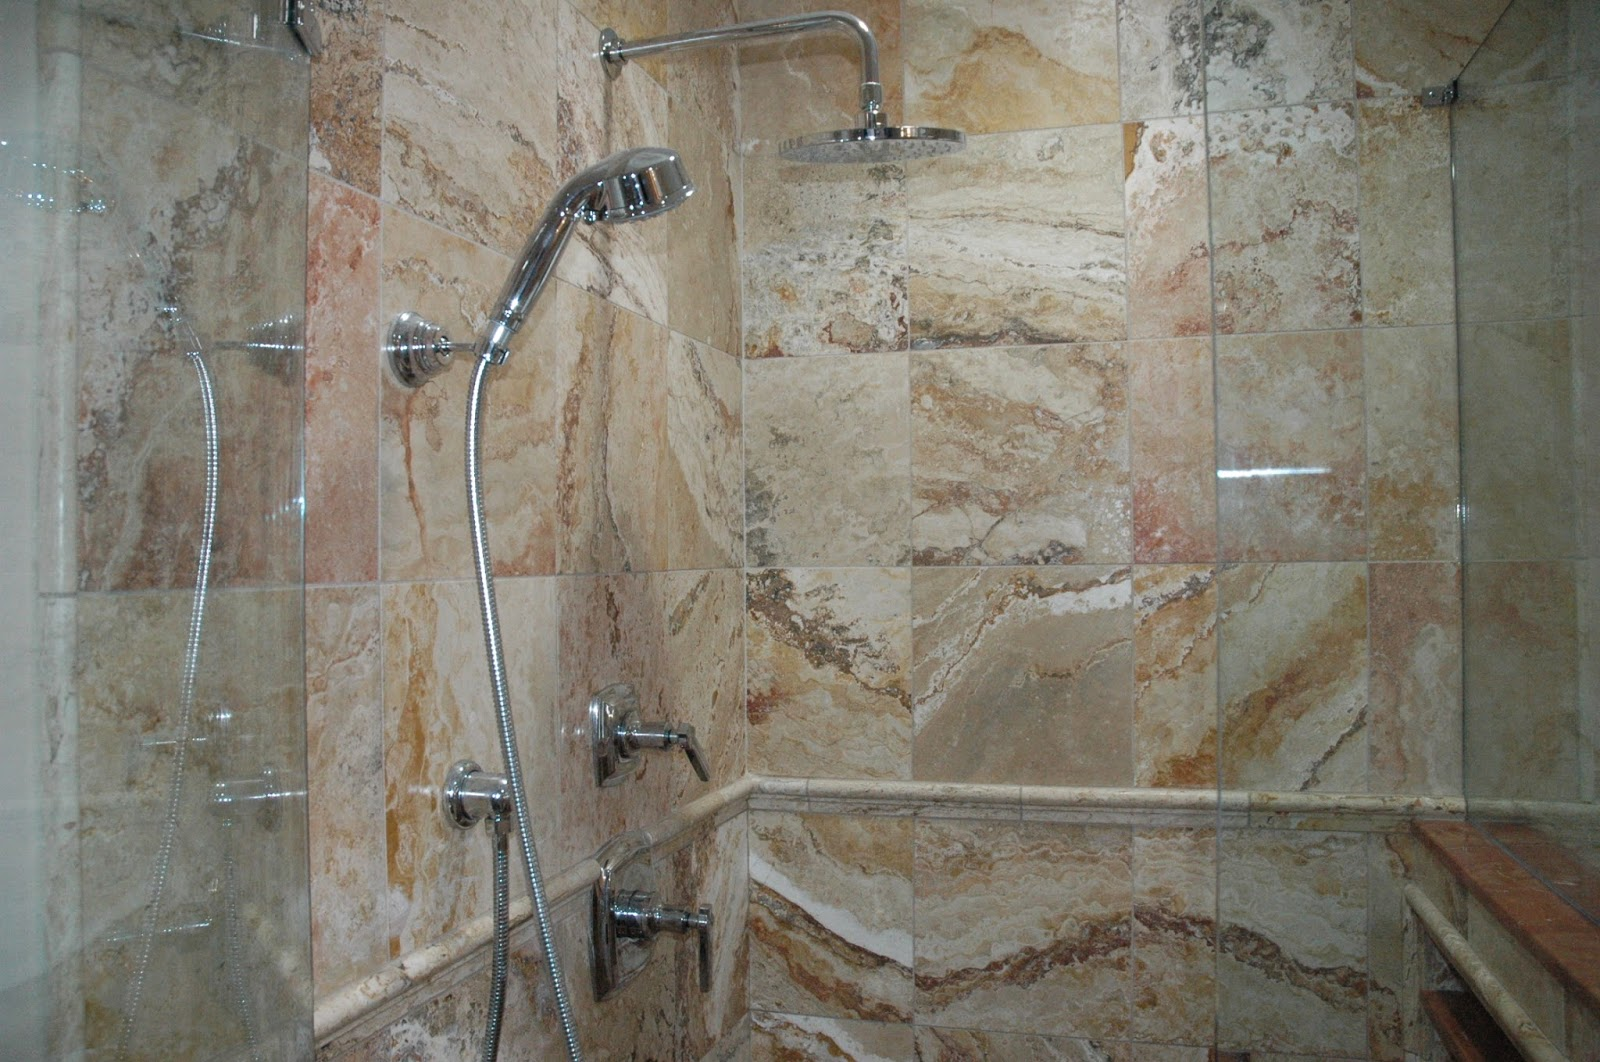 Bathroom idea shower tile bathroom shower bathroom 2 bp blogspot com - Custom Bathroom Shower Custom Tile Showers Bathroom Design Renovations Flooring Image Source 2 Bp Blogspot Com